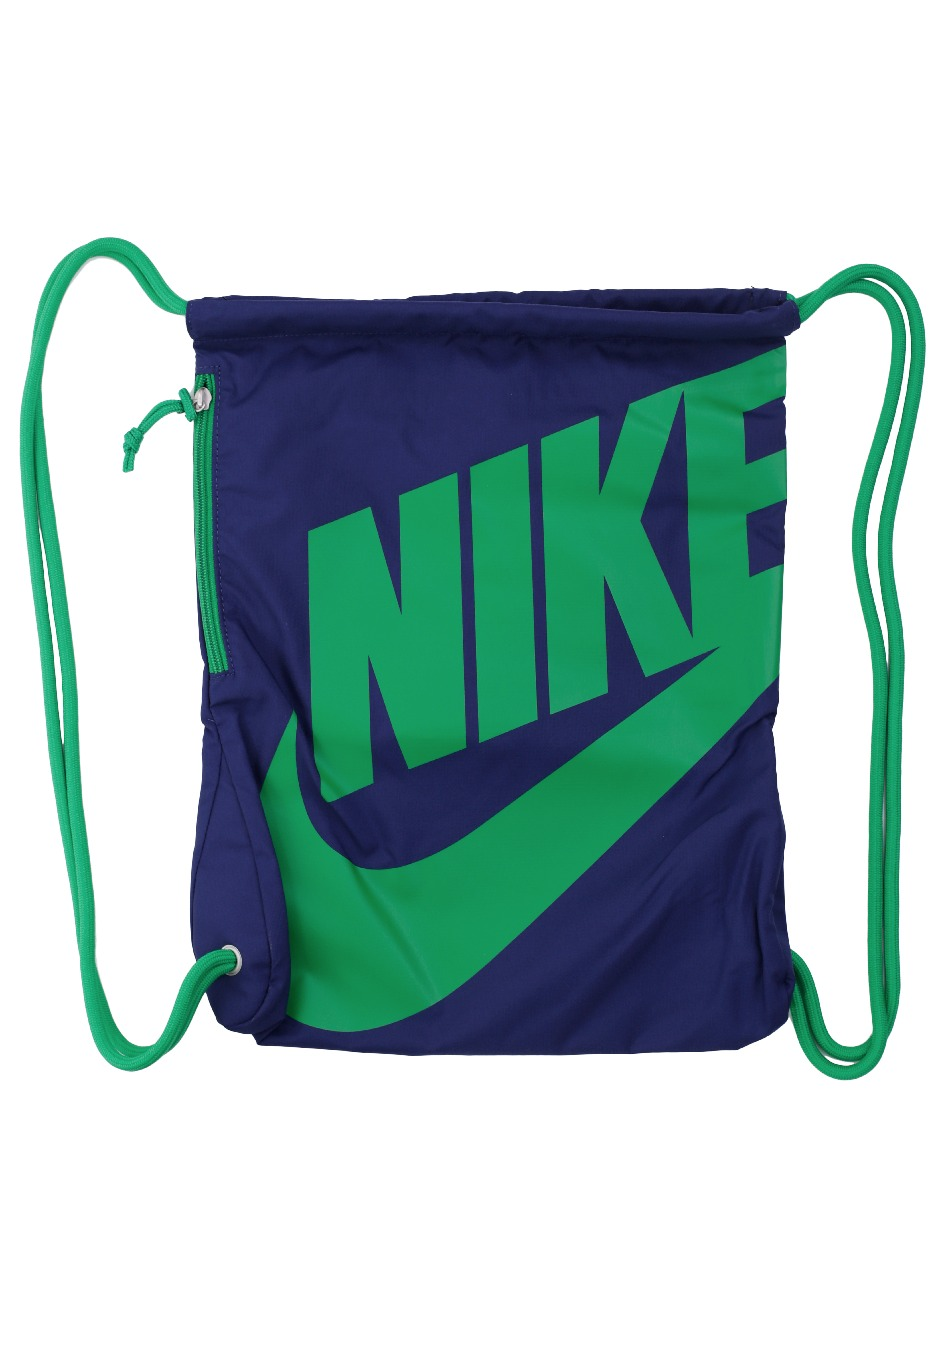 902cd126307c1 Nike - Heritage Gymsack Loyal Blue Green - Backpack - Streetwear Shop -  Impericon.com UK